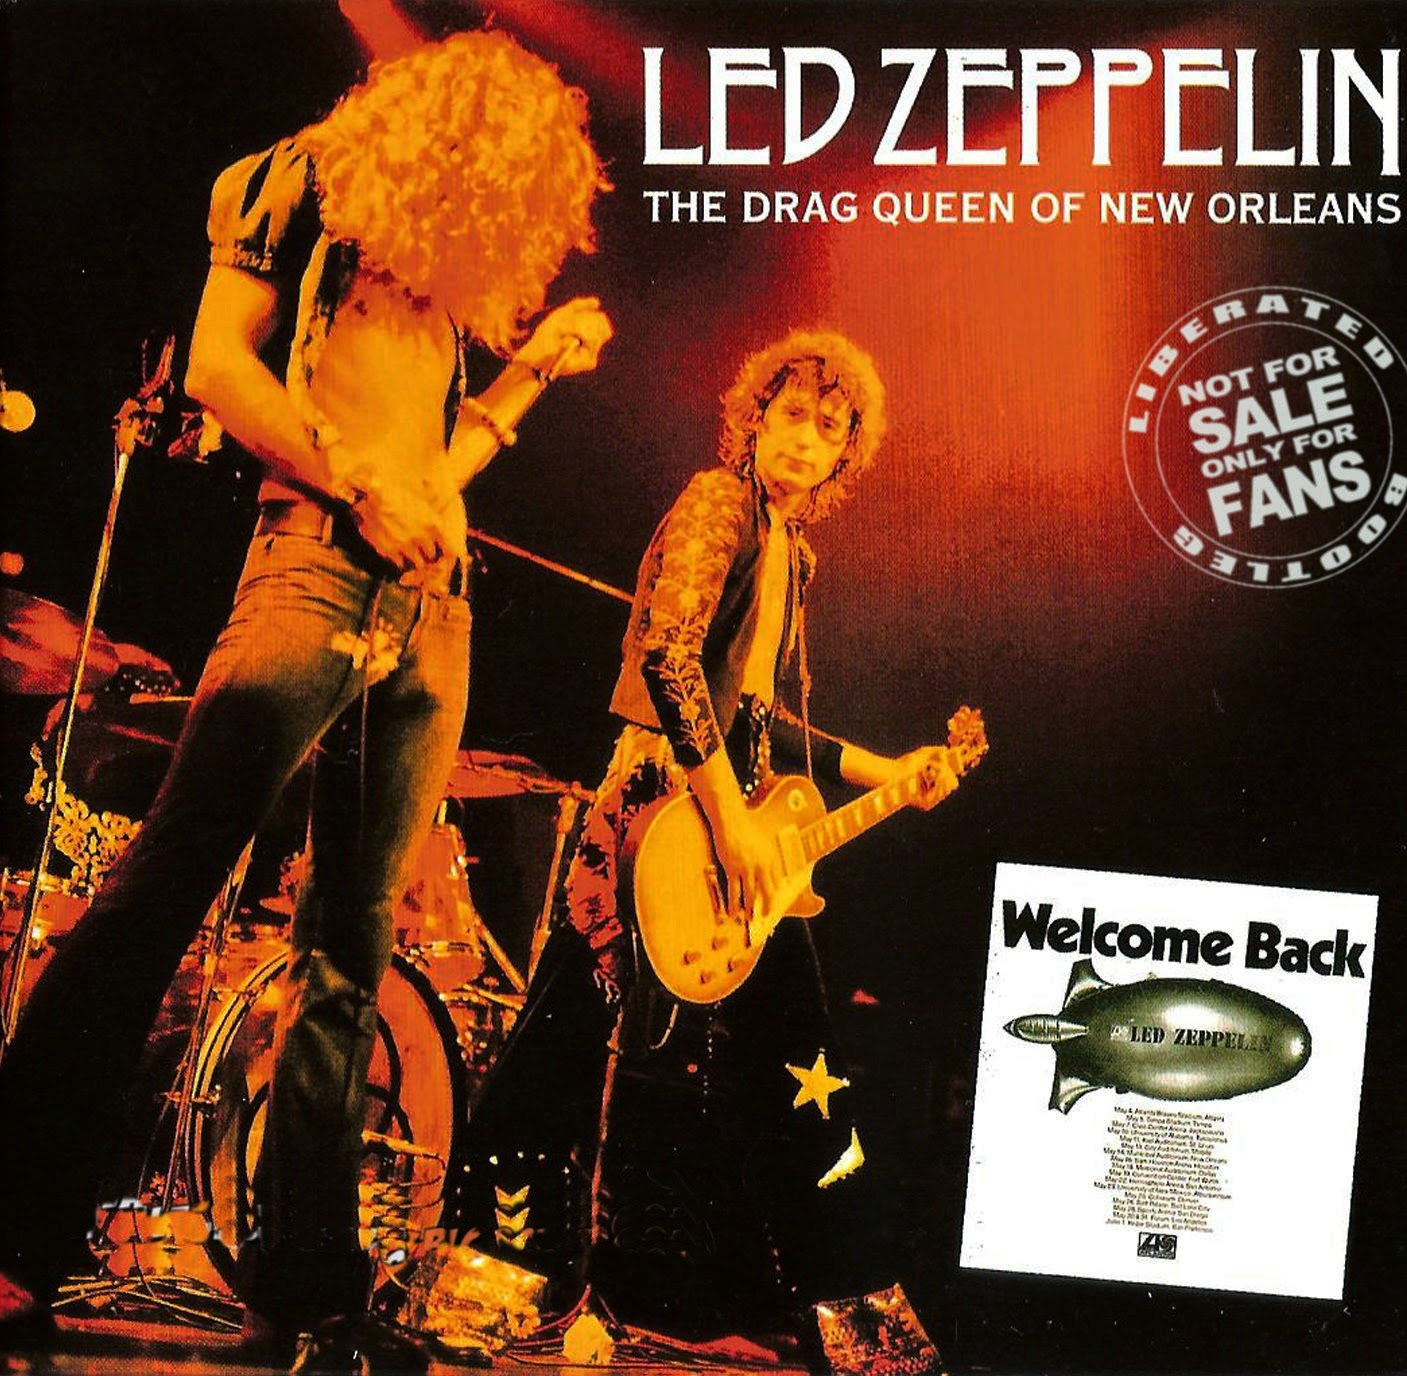 1973 - Led Zeppelin - The Drag Queen Of New Orleans - Bootleg